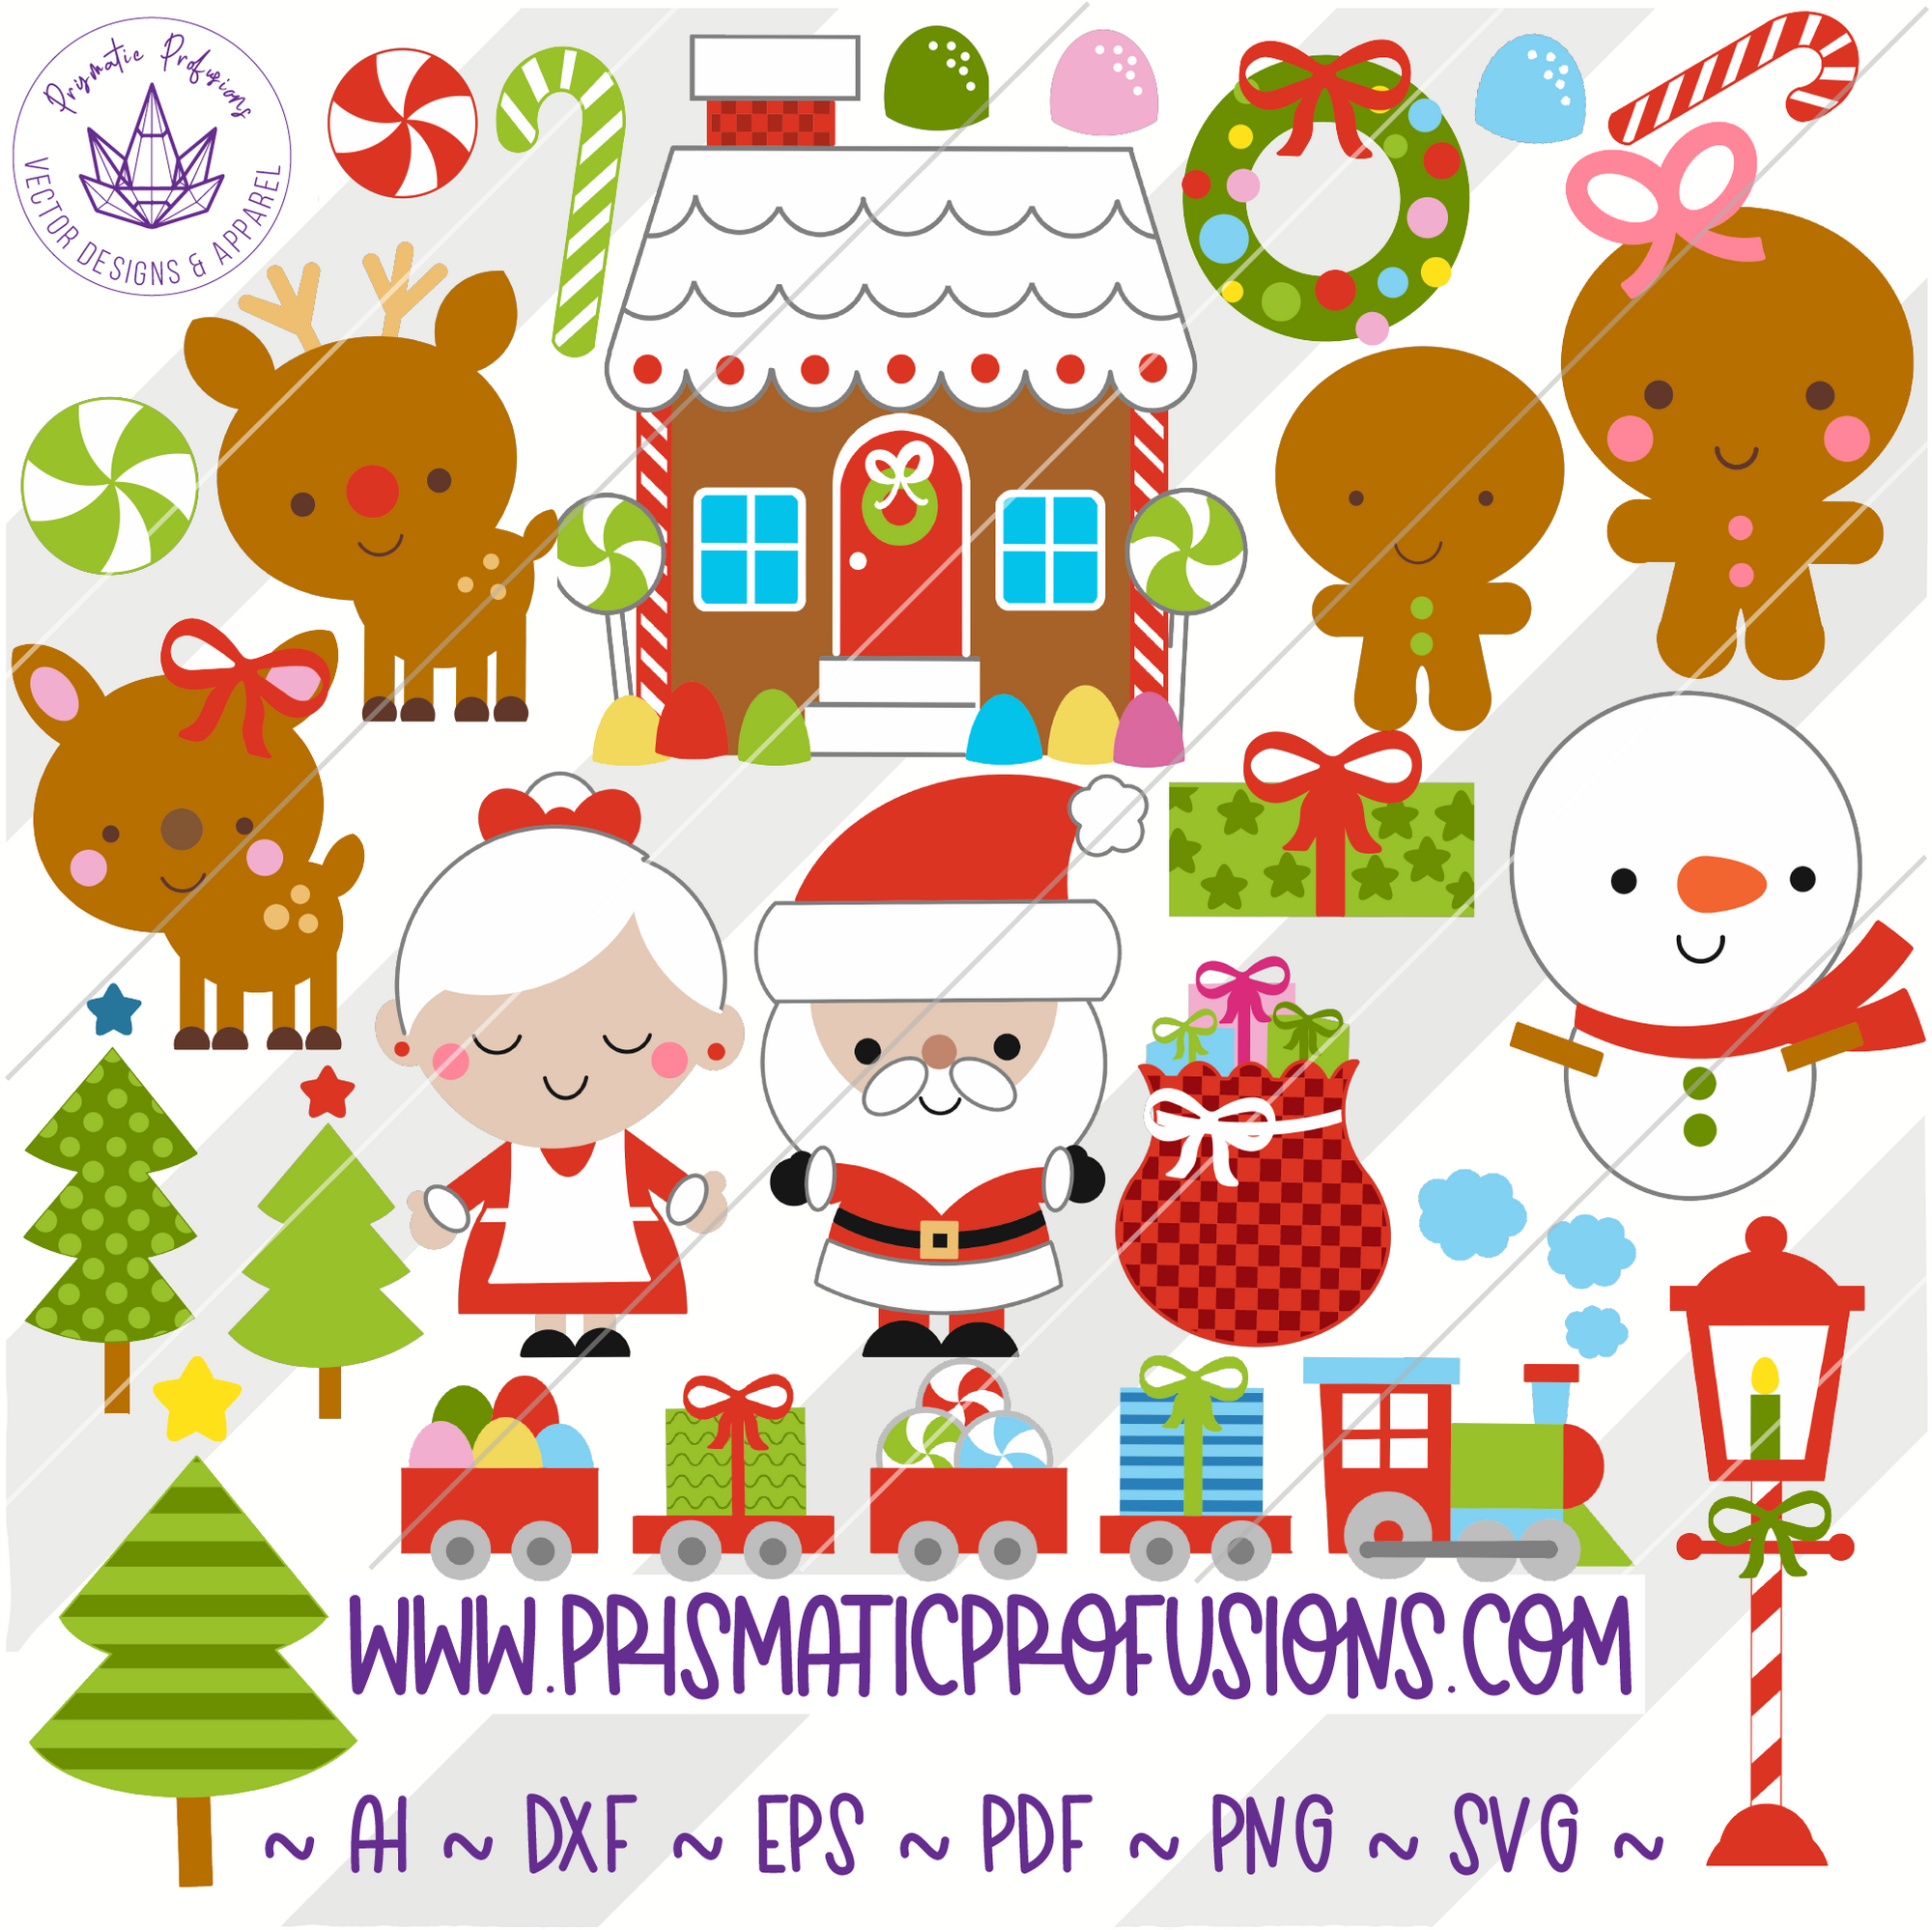 Pin on Prismatic Profusions Holiday Art